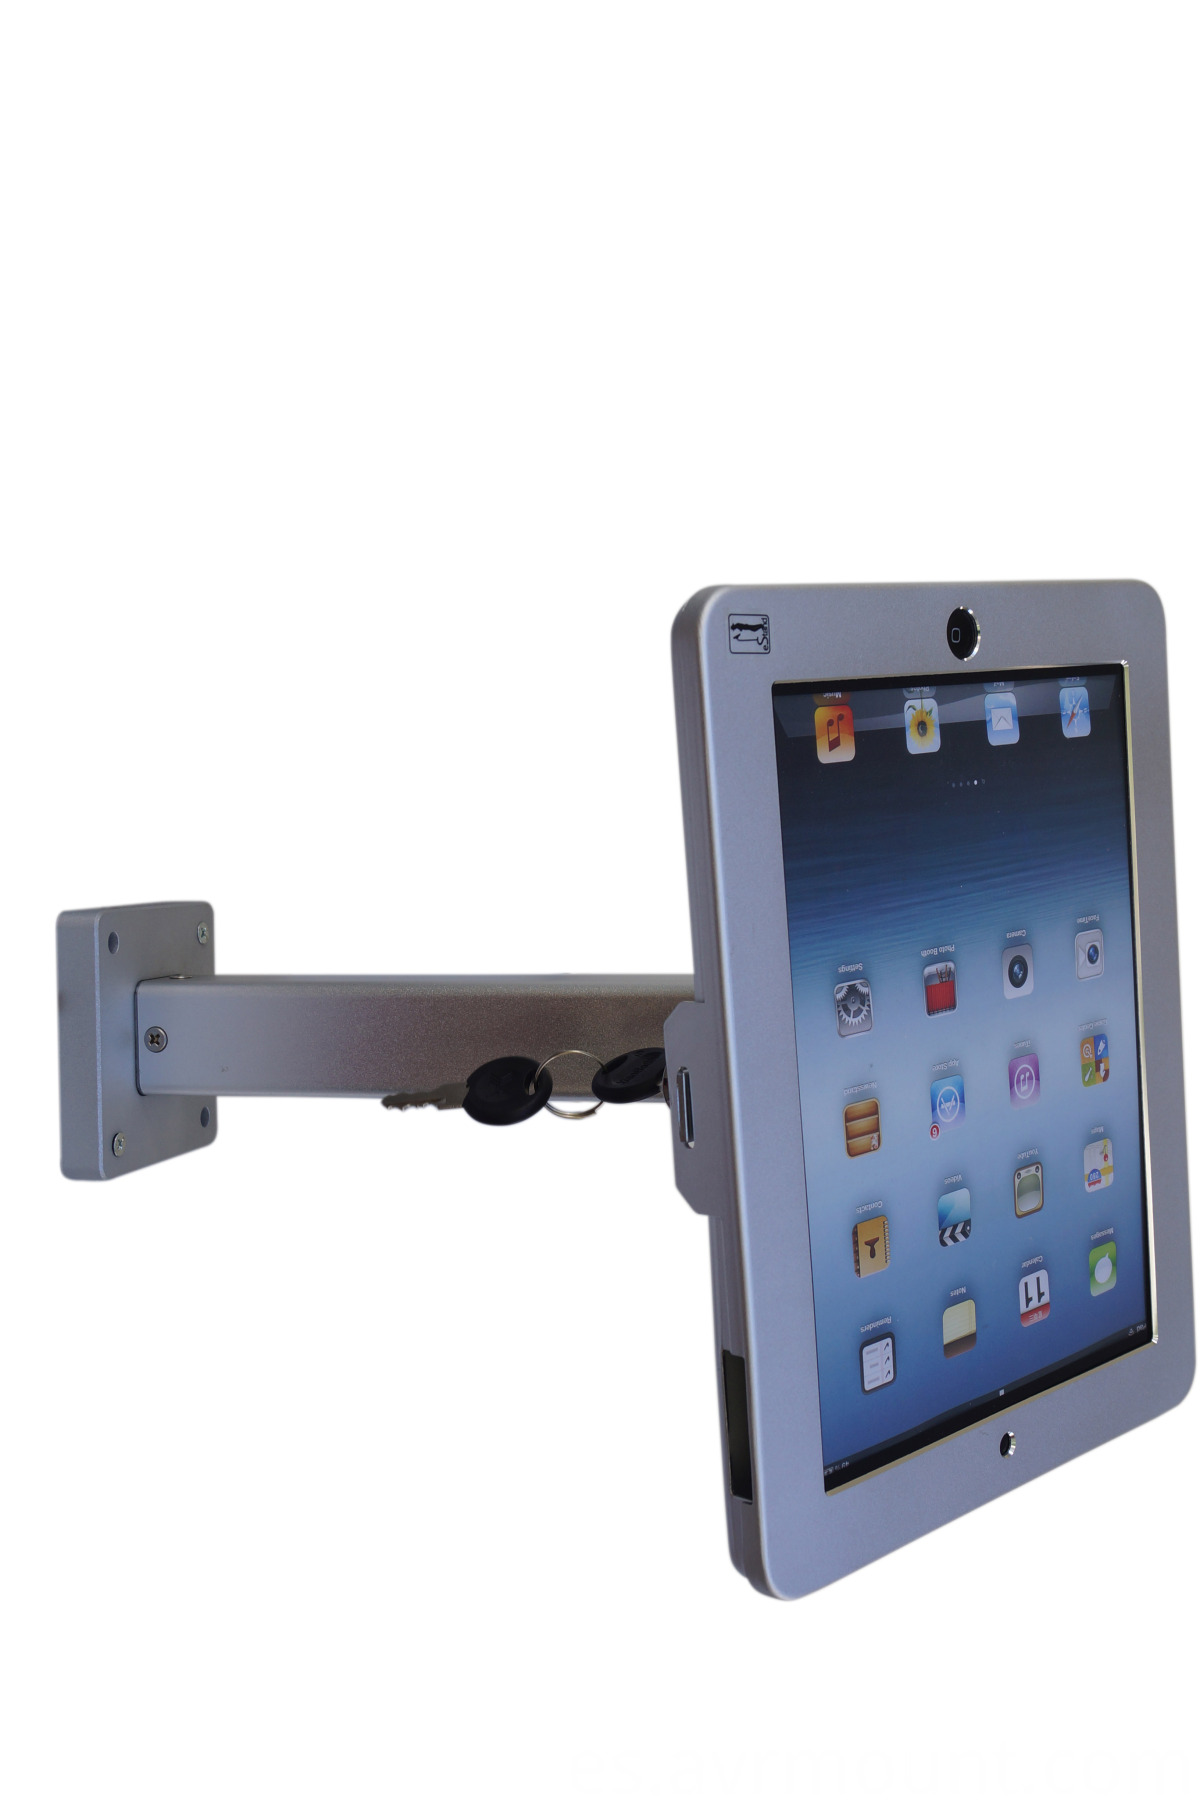 IPAD wall mount anti-theft